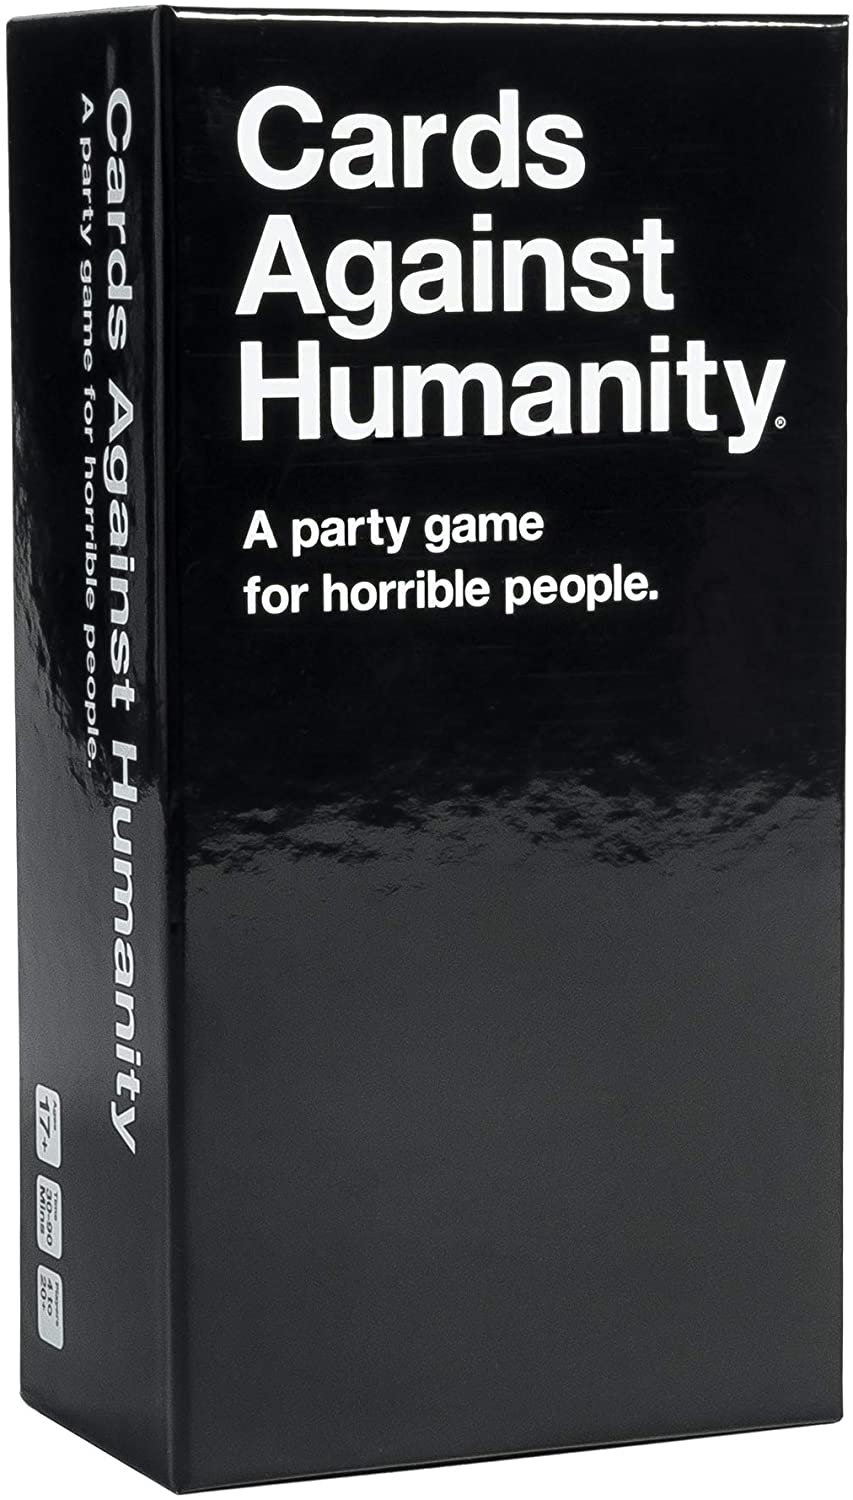 Cards against humanity Review